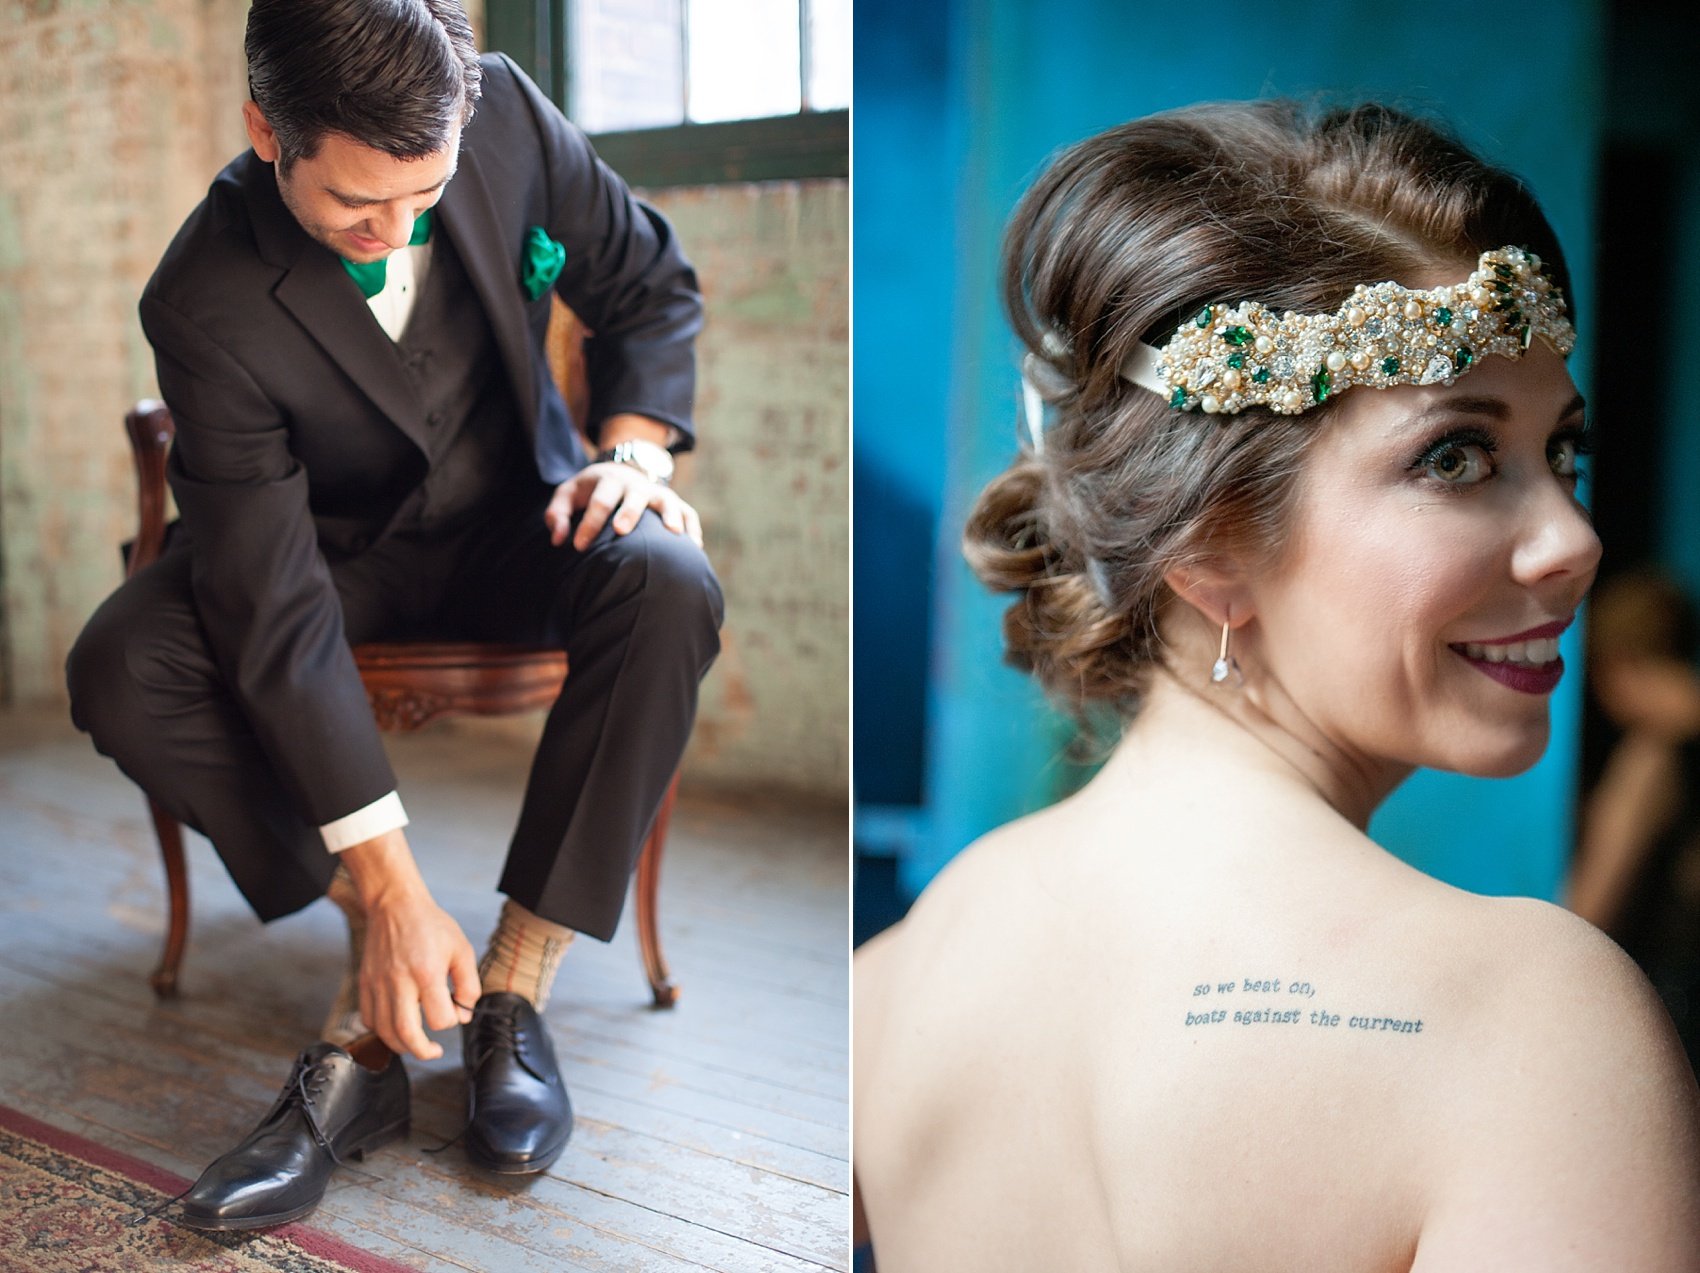 Metropolitan Building vintage 1920's wedding. Complete with bride's new tattoo of a Fitzgerald quote. Images by Mikkel Paige Photography.